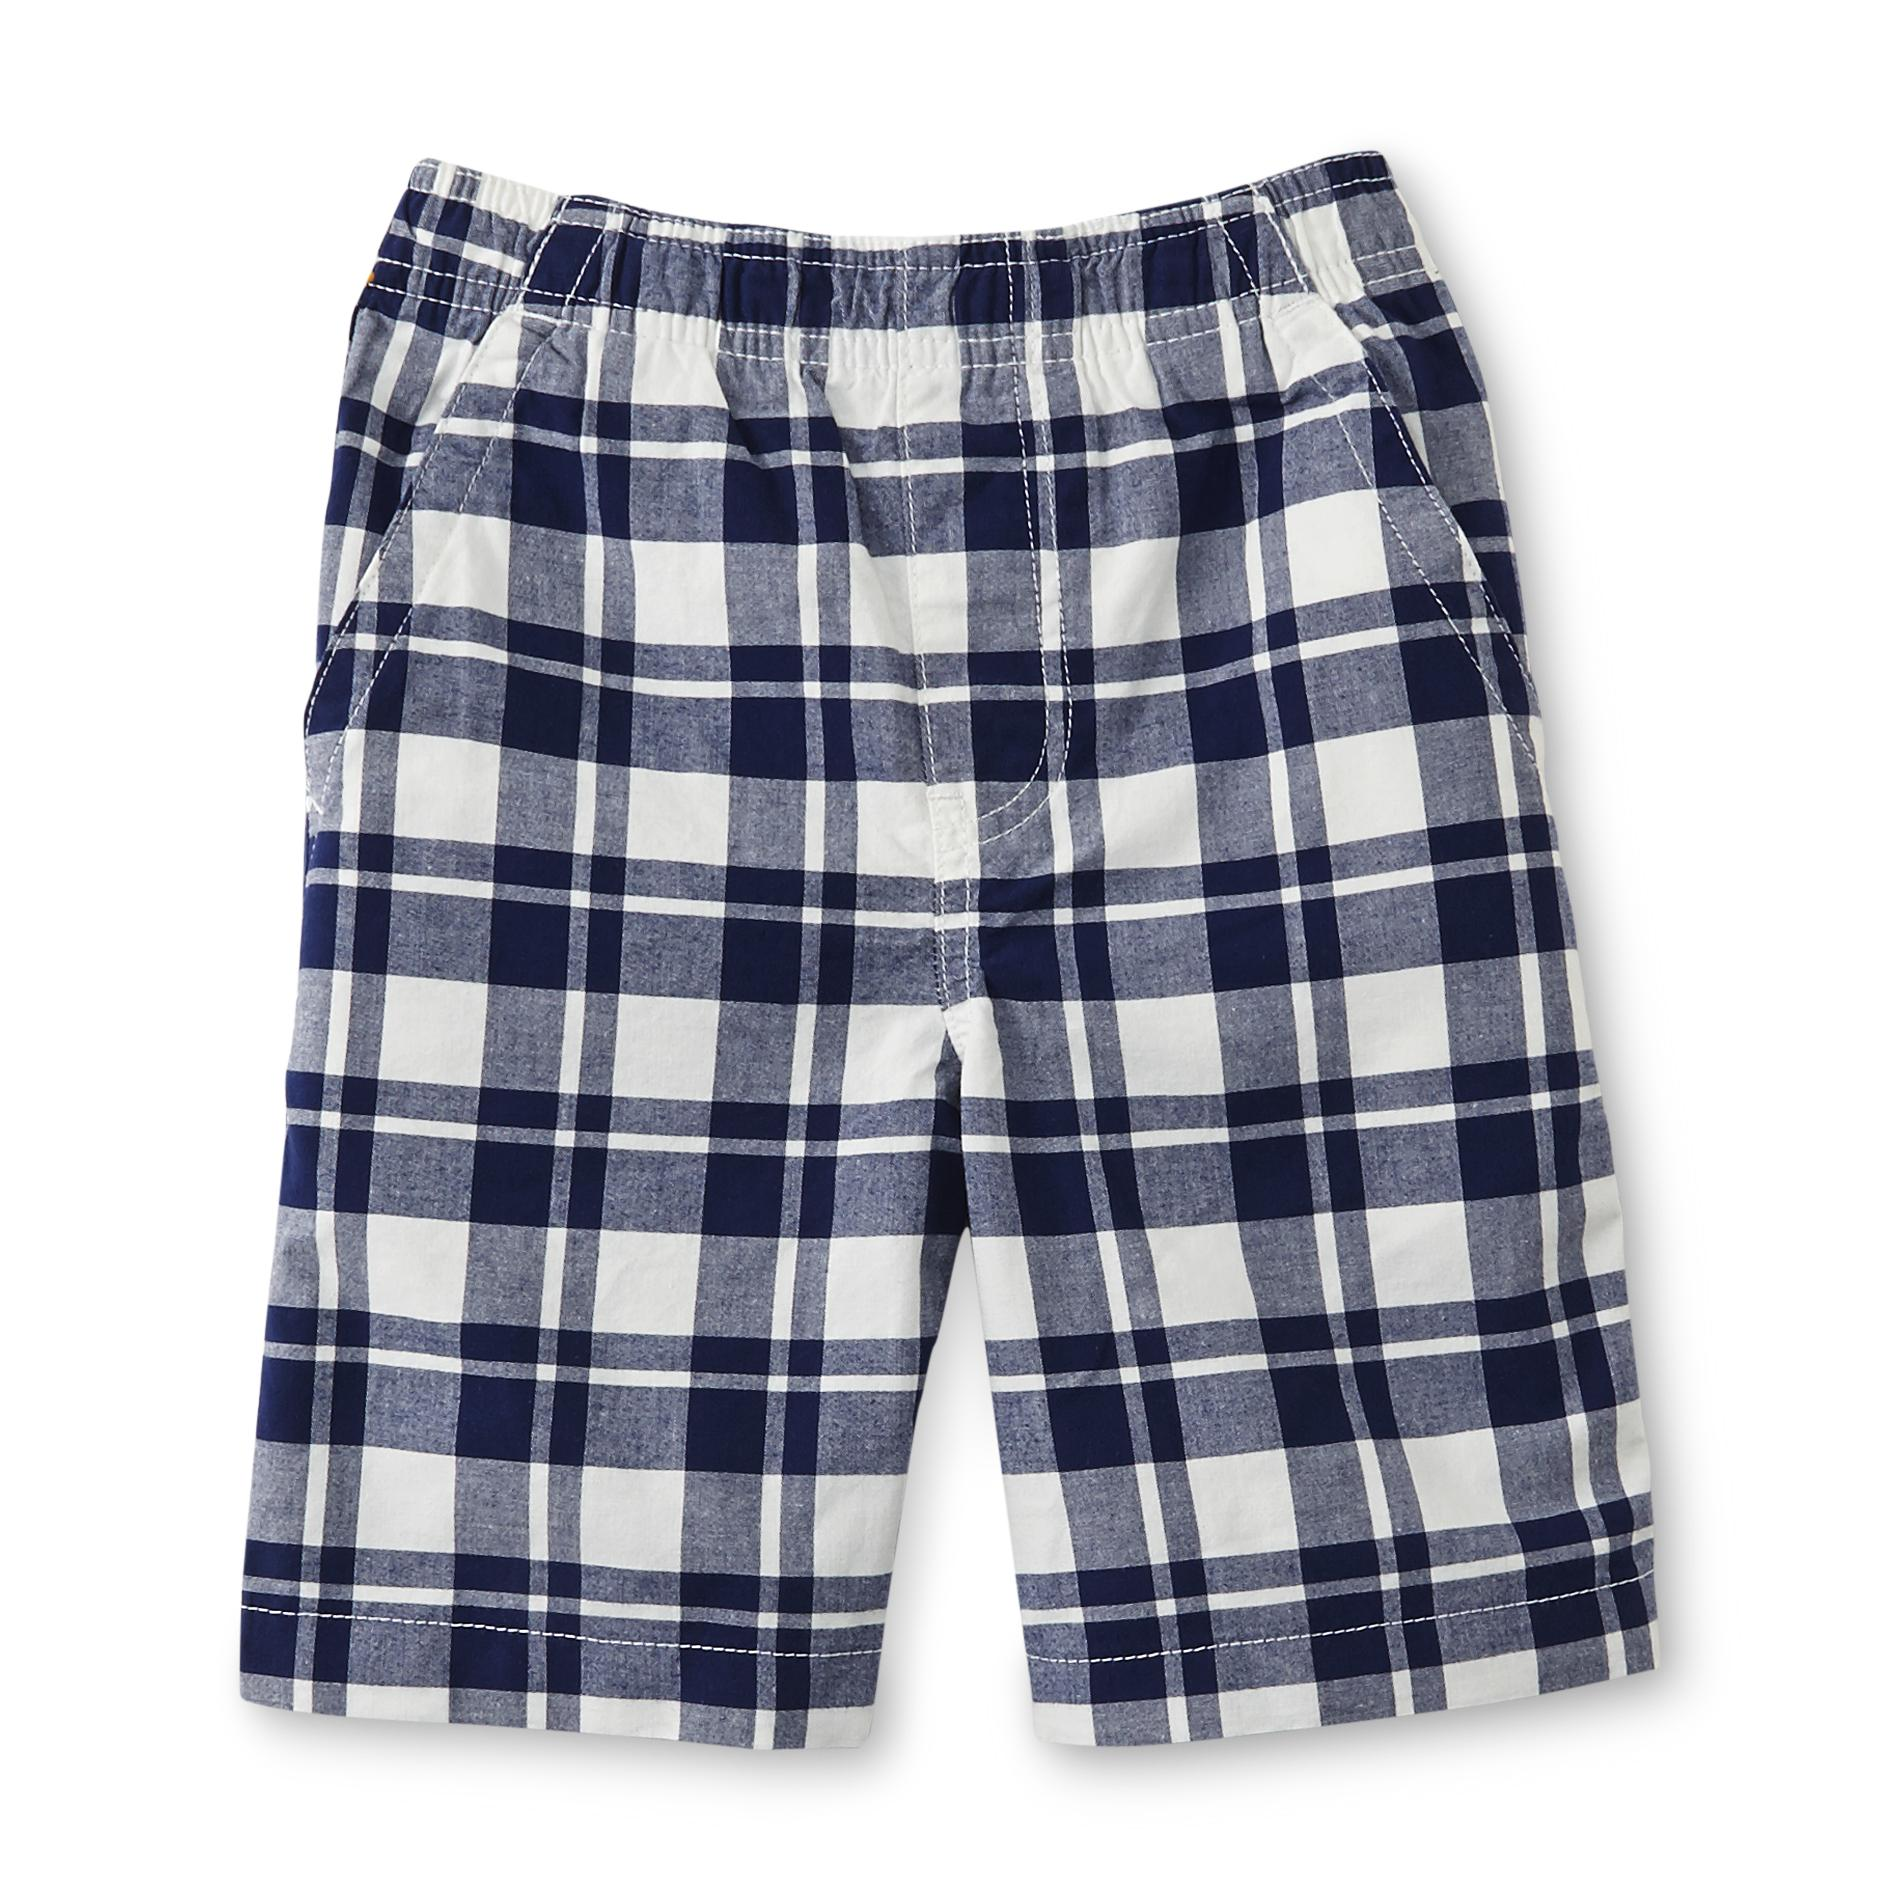 Basic Editions Boy's Comfort-Waist Woven Shorts - Plaid